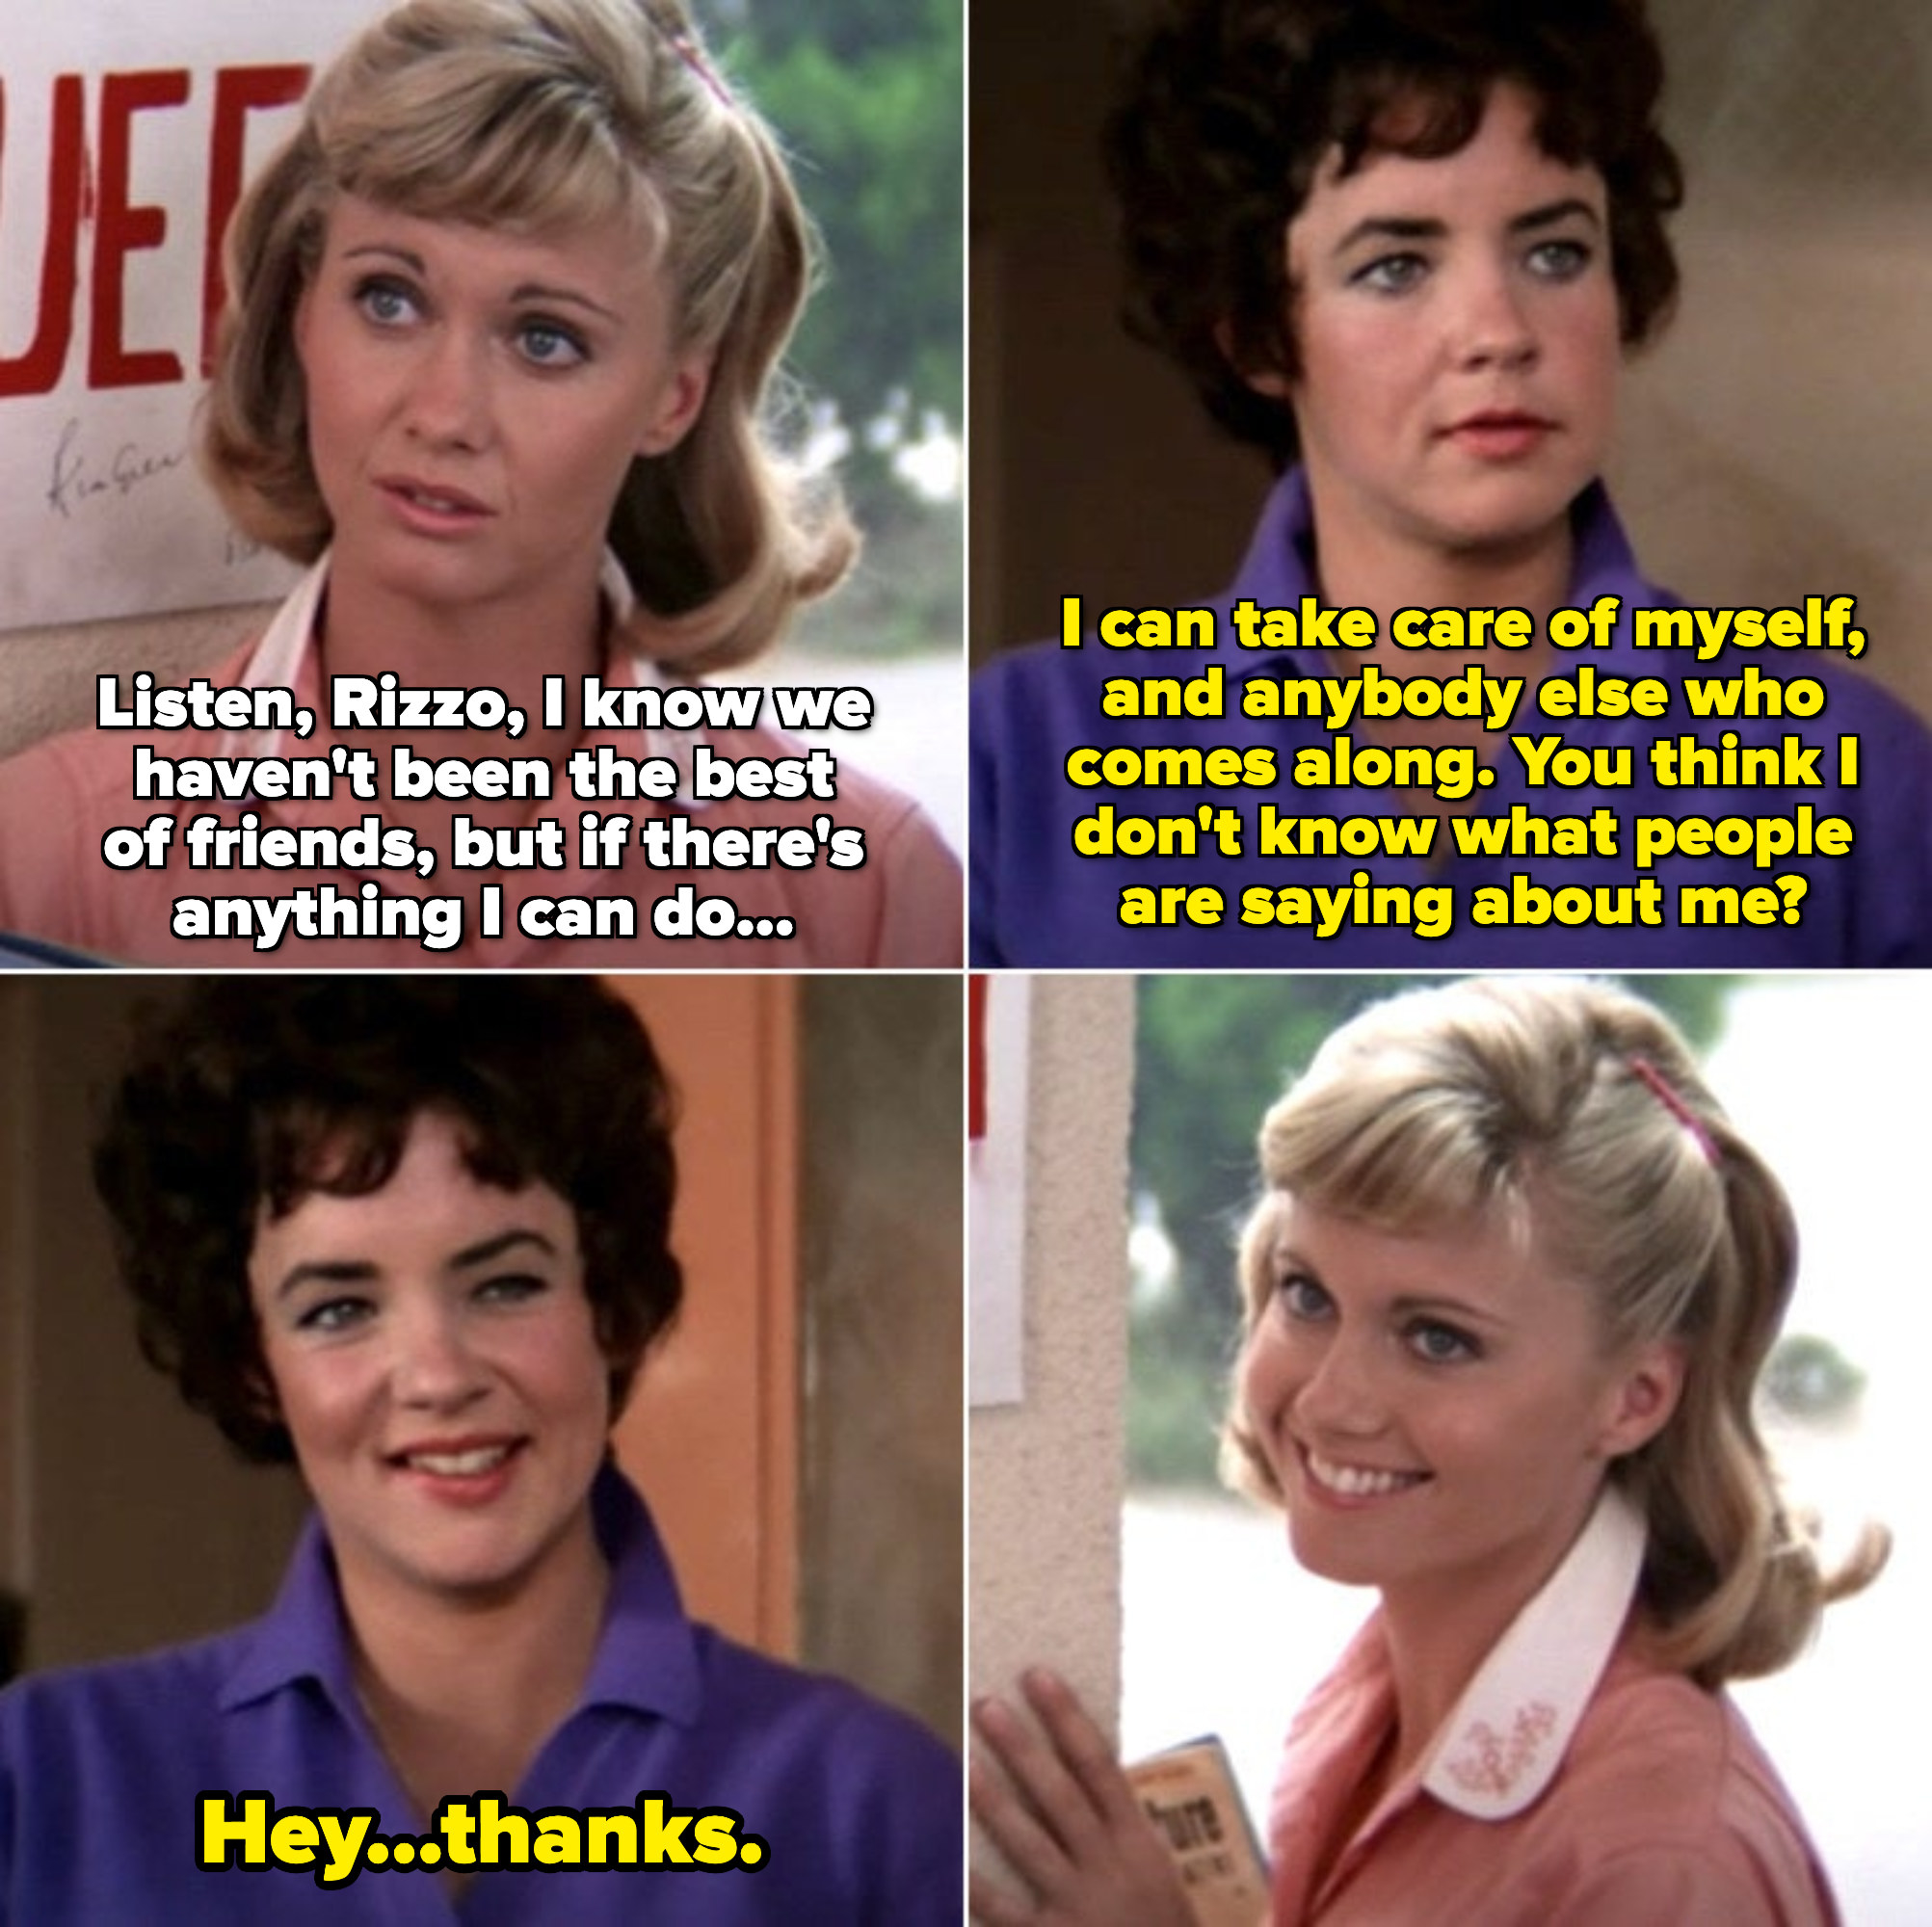 Sandy offering an upset Rizzo help at school toward the end of the movie, even though they aren't good friends. They have an unspoken truce